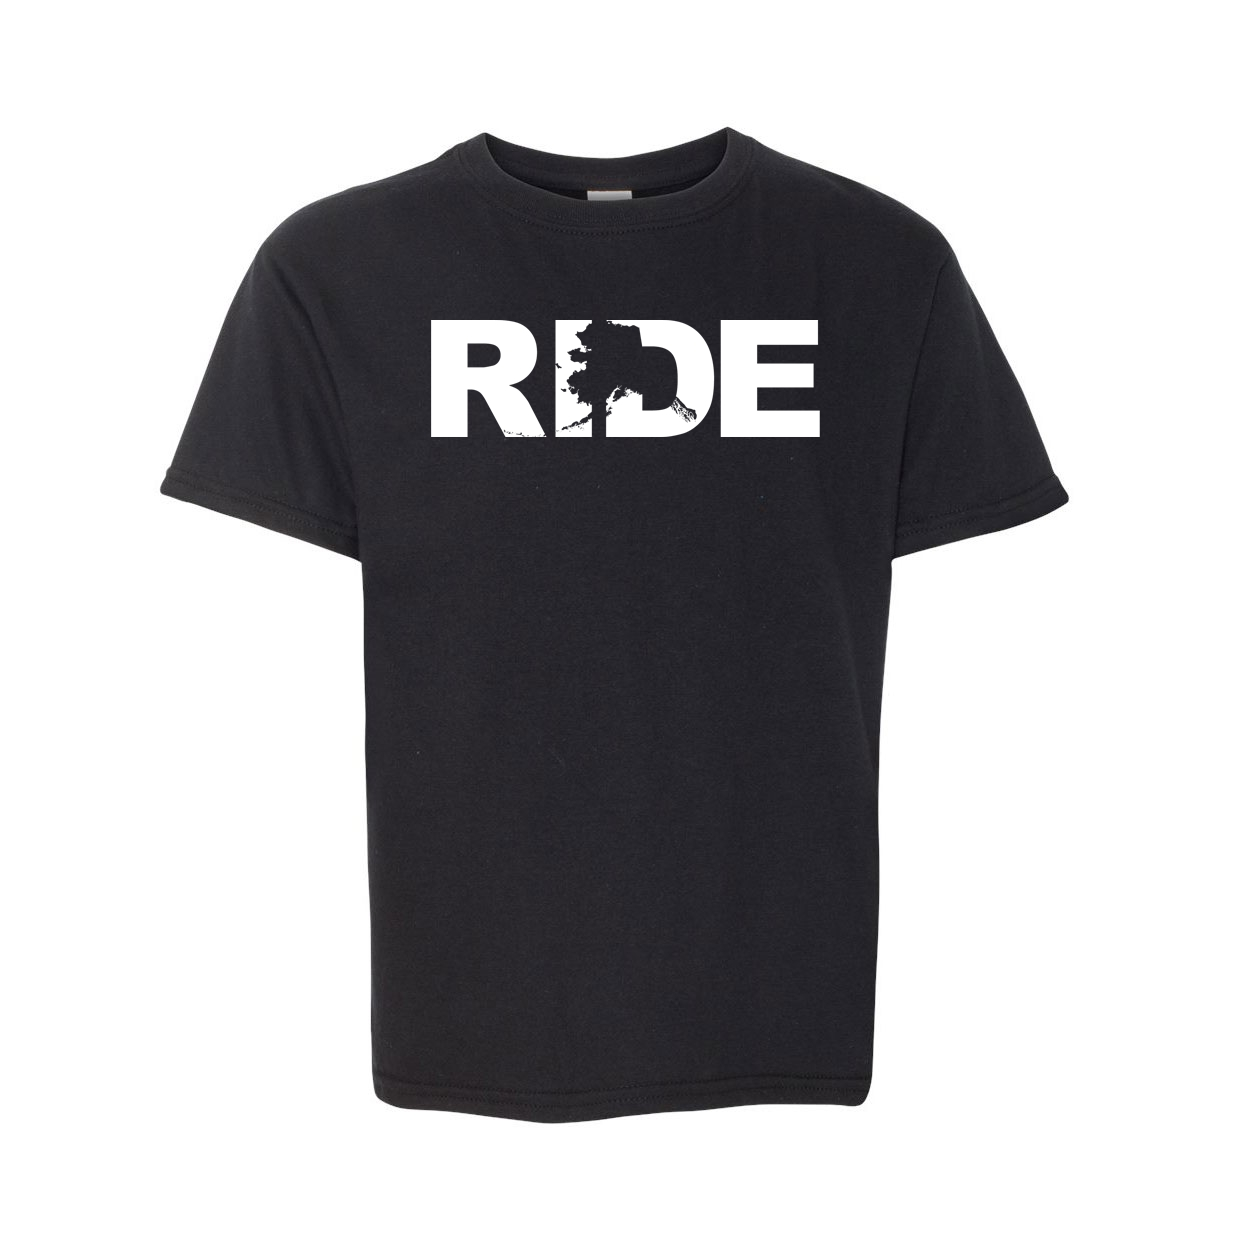 Ride Alaska Classic Youth T-Shirt Black (White Logo)